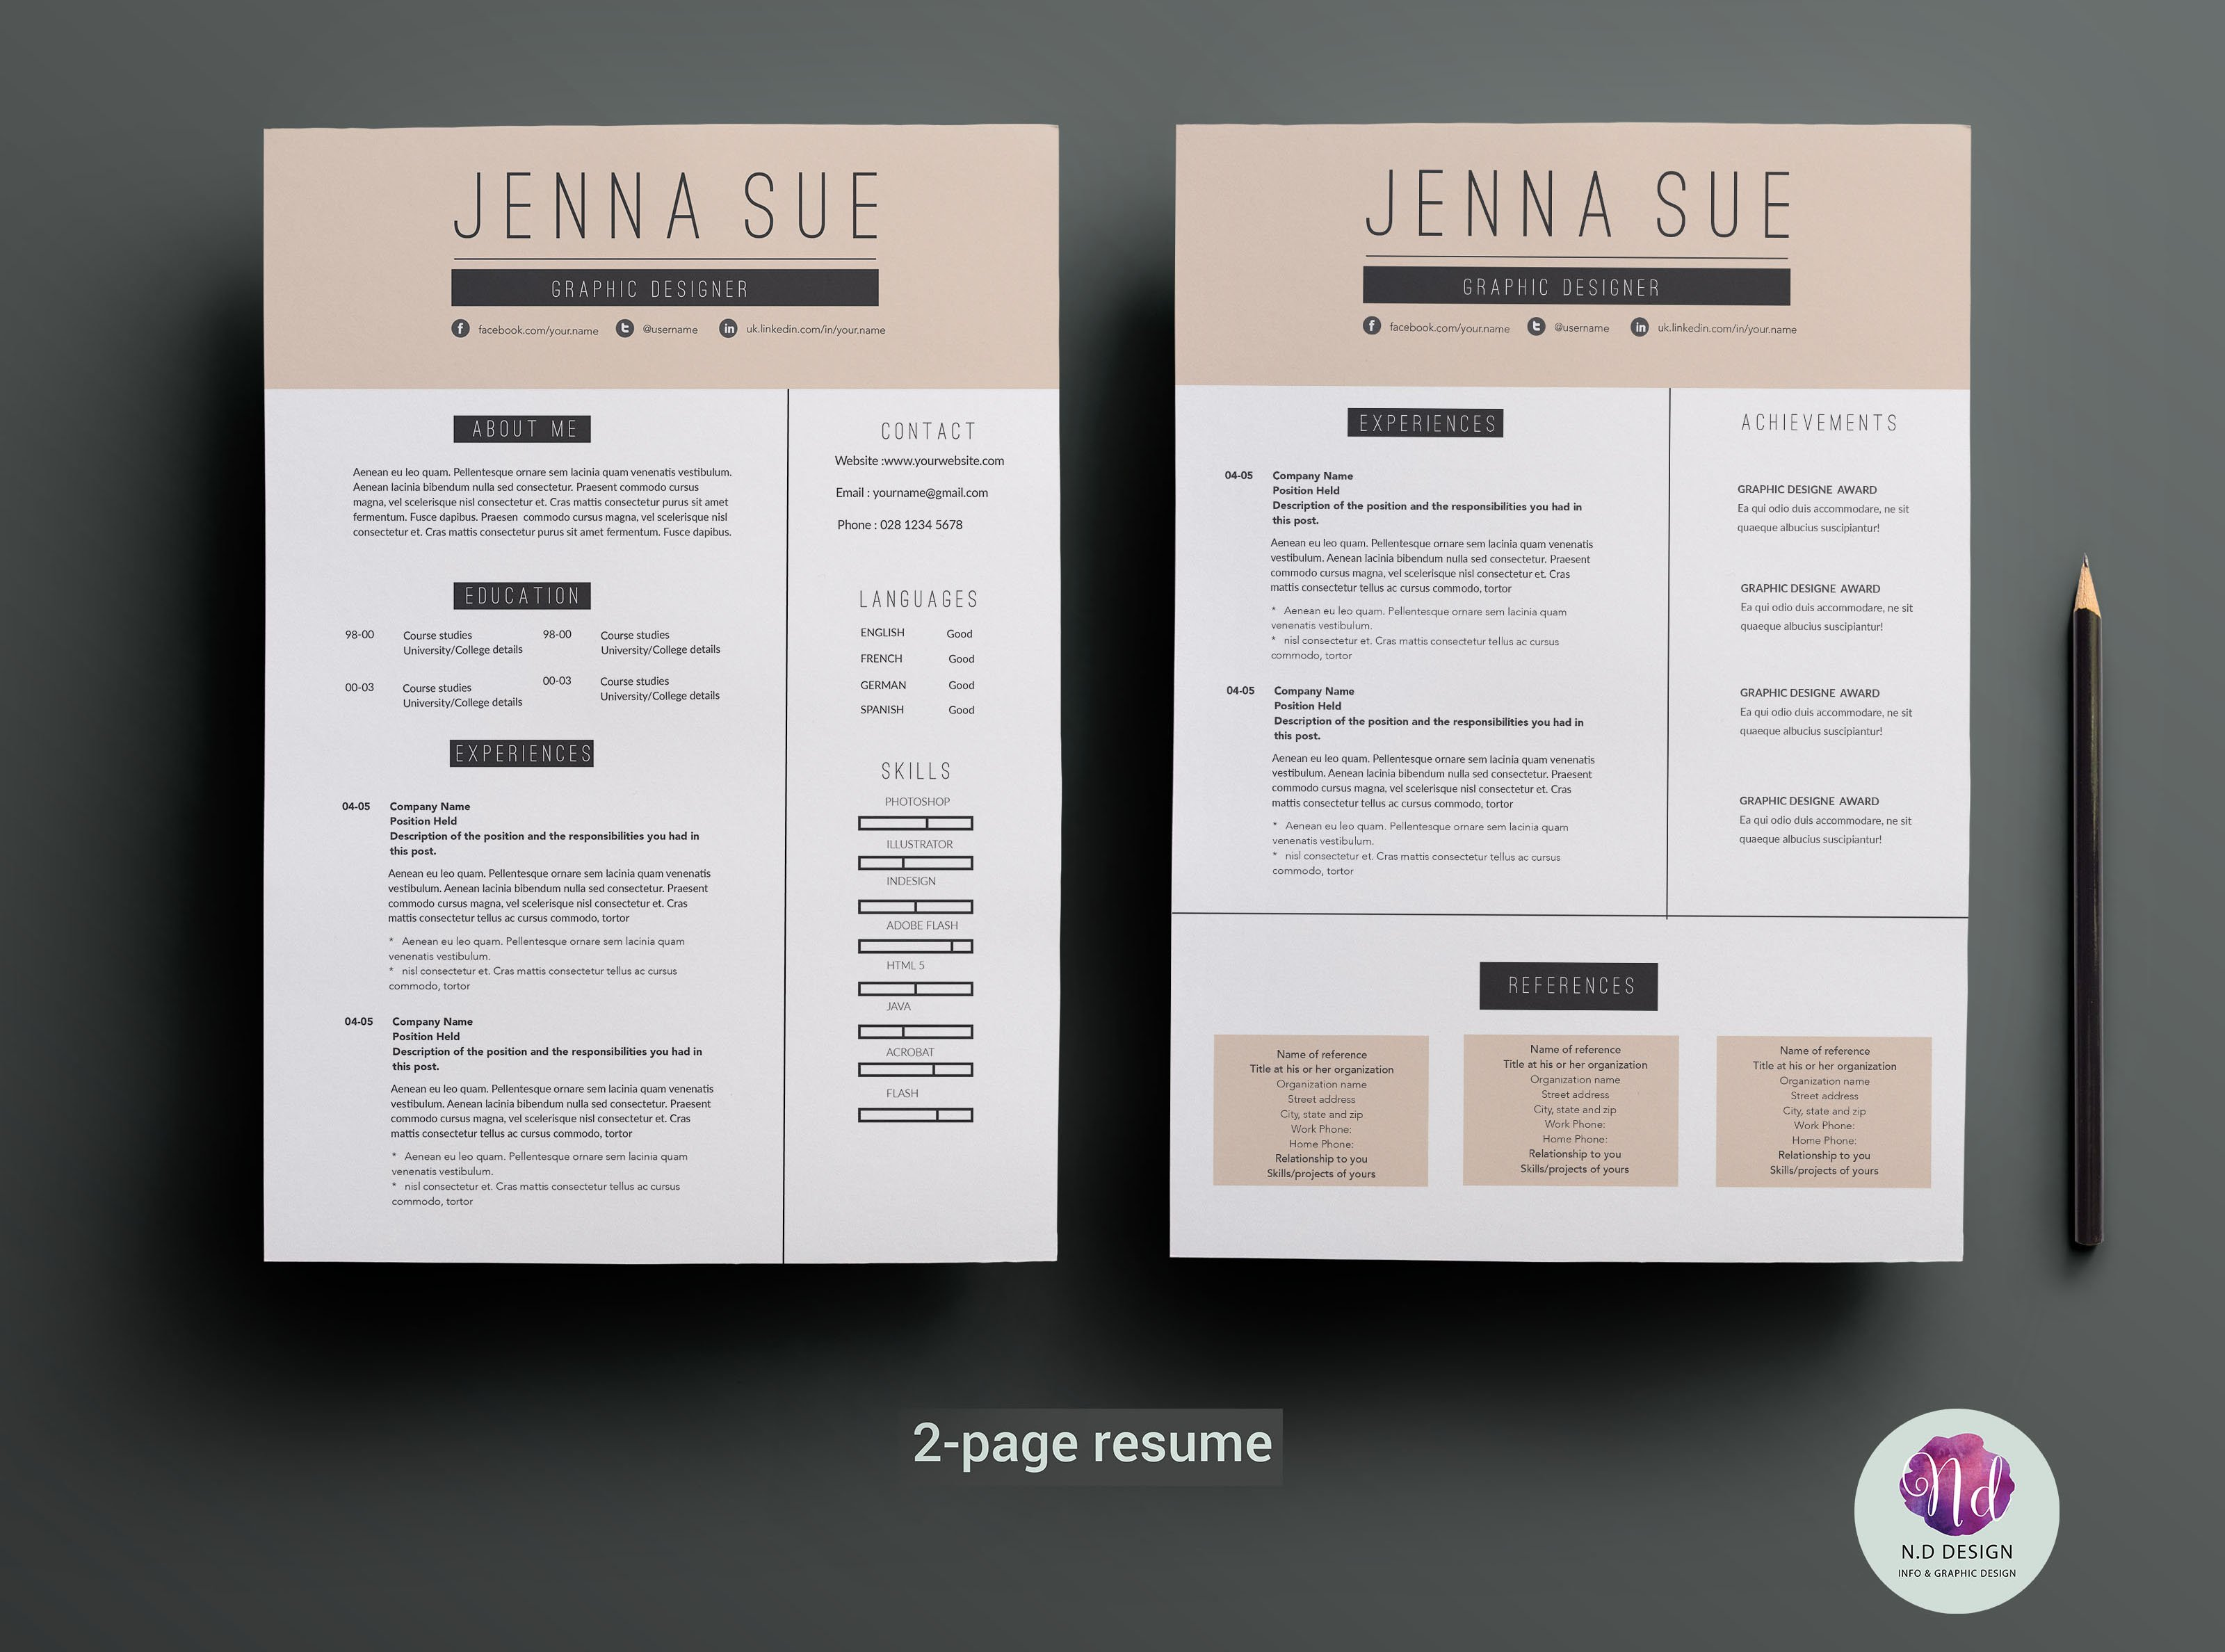 resume 1 Or 2 Page Resume 2 page resume template templates on creative market